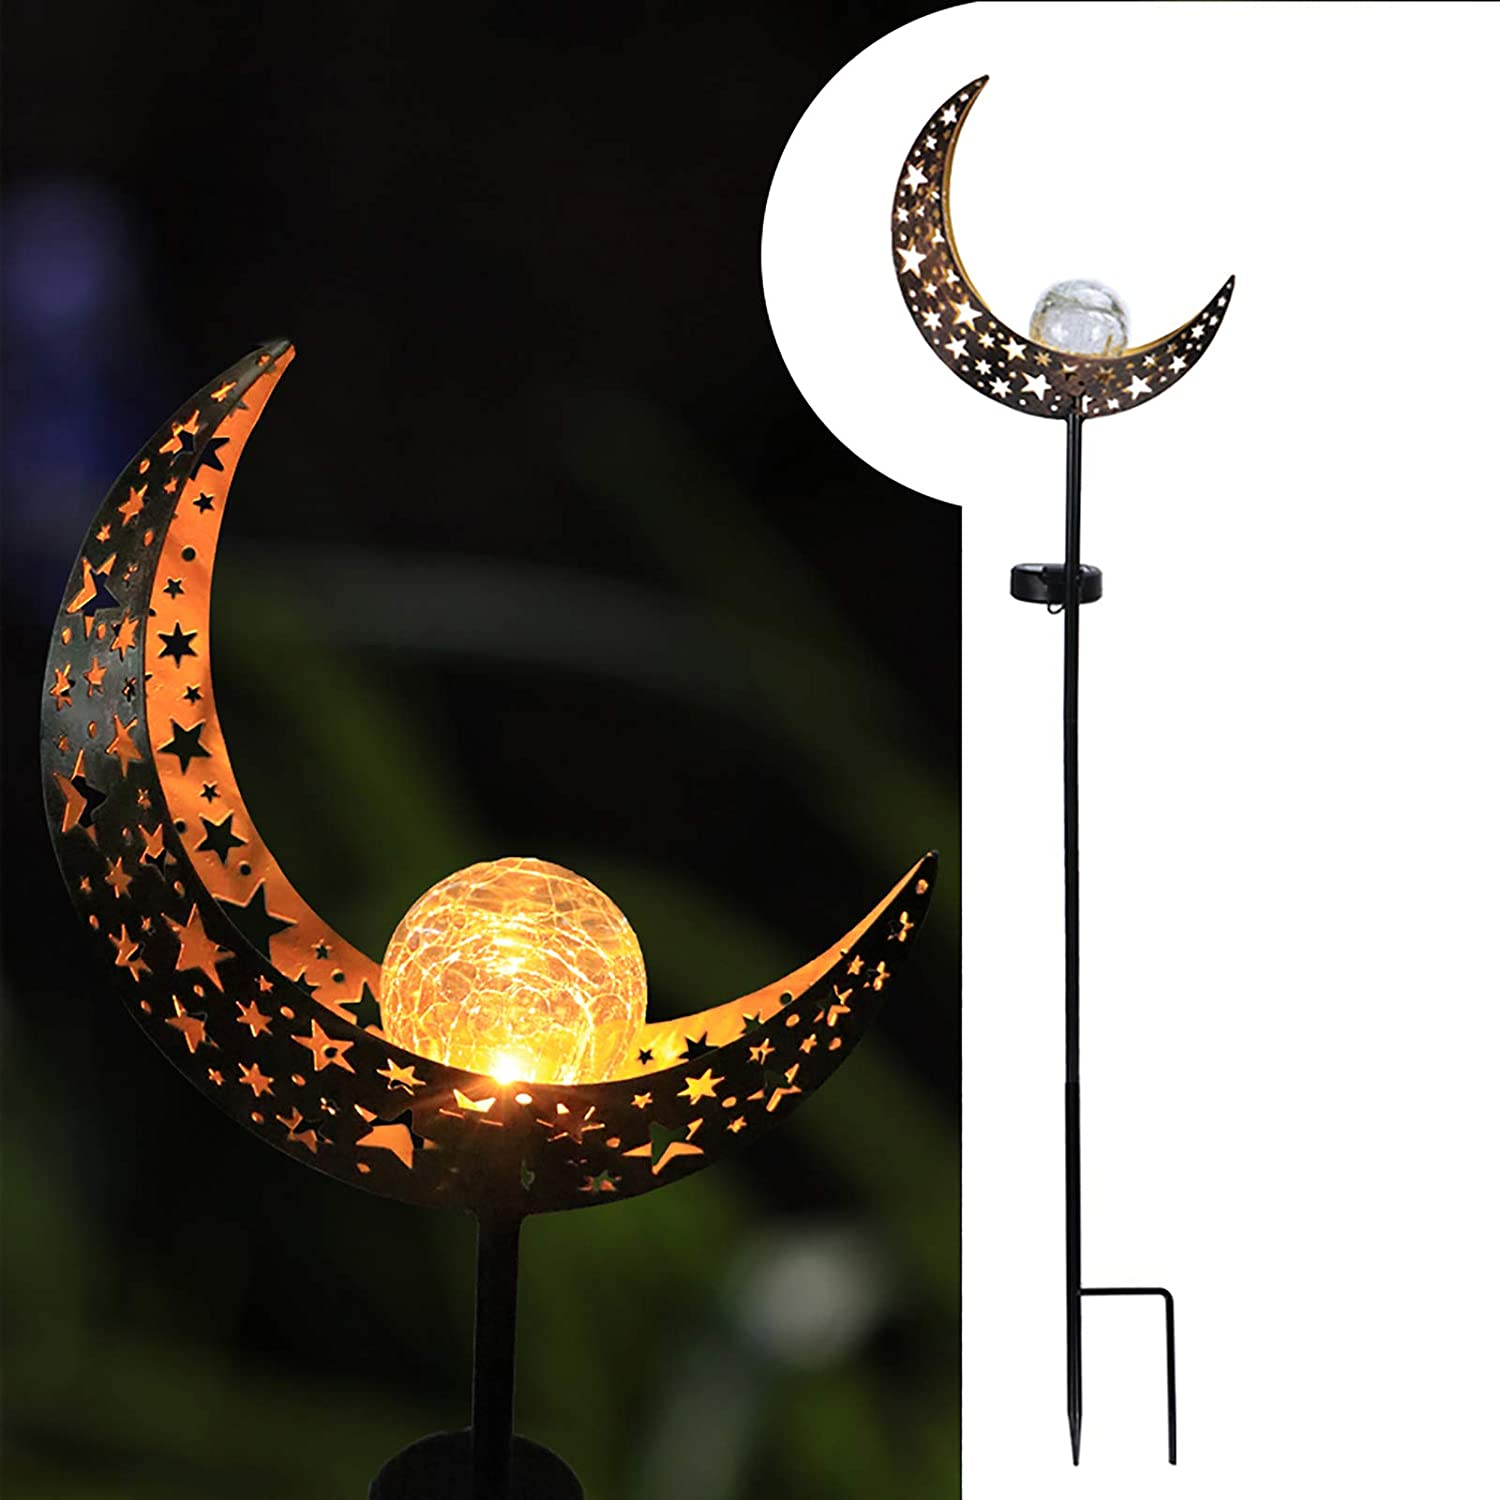 Decorative Solar Lights Outdoor Courtyard Lawn Patio Decoration Solar Globe Lights Moon Crackle Glass Ball Waterproof 1 Pack